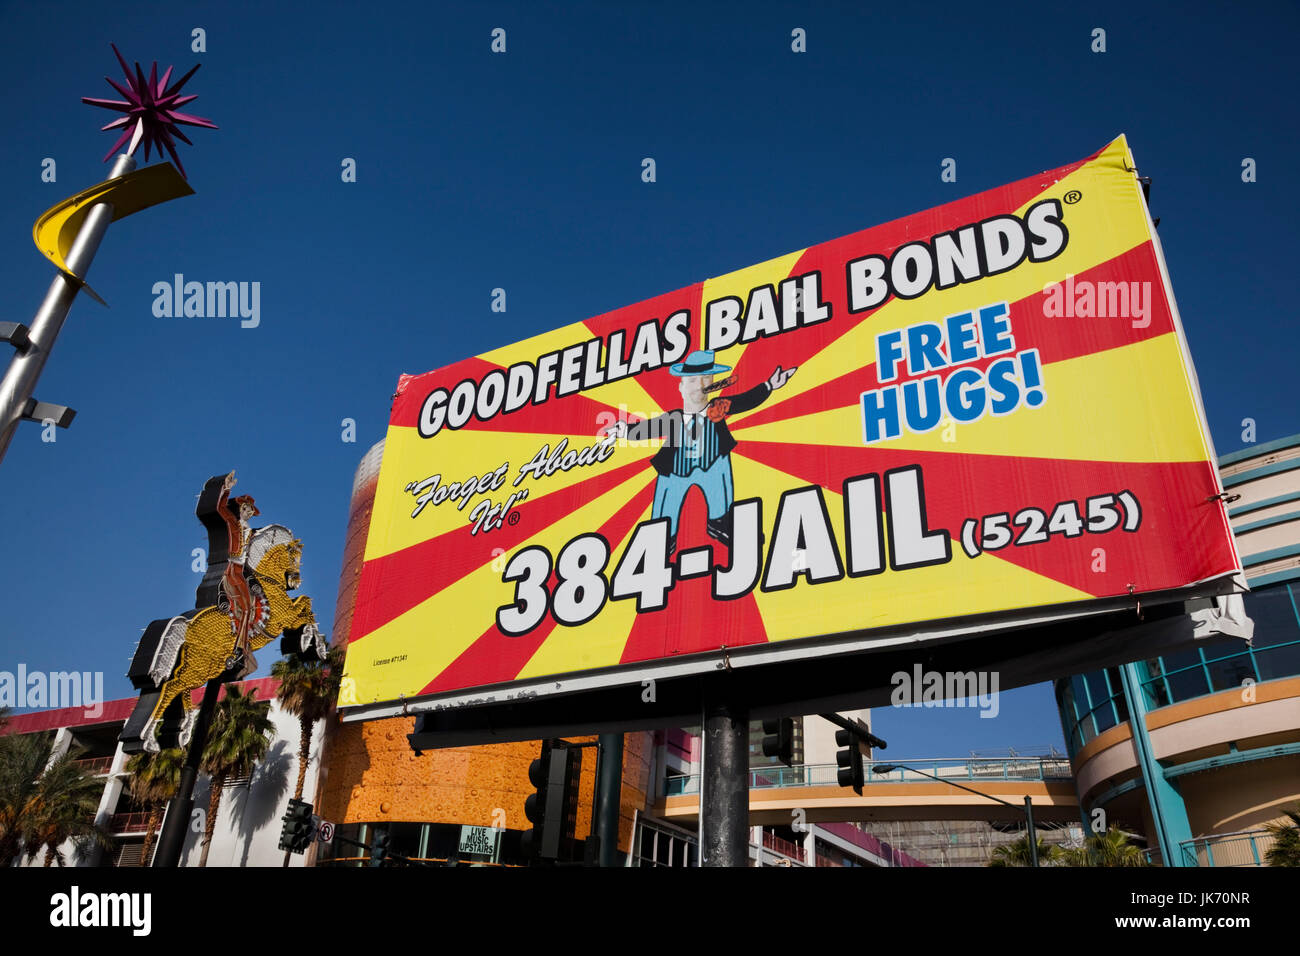 USA, Nevada, Las Vegas, Downtown, Fremont Street East, sign for bail bonds service - Stock Image